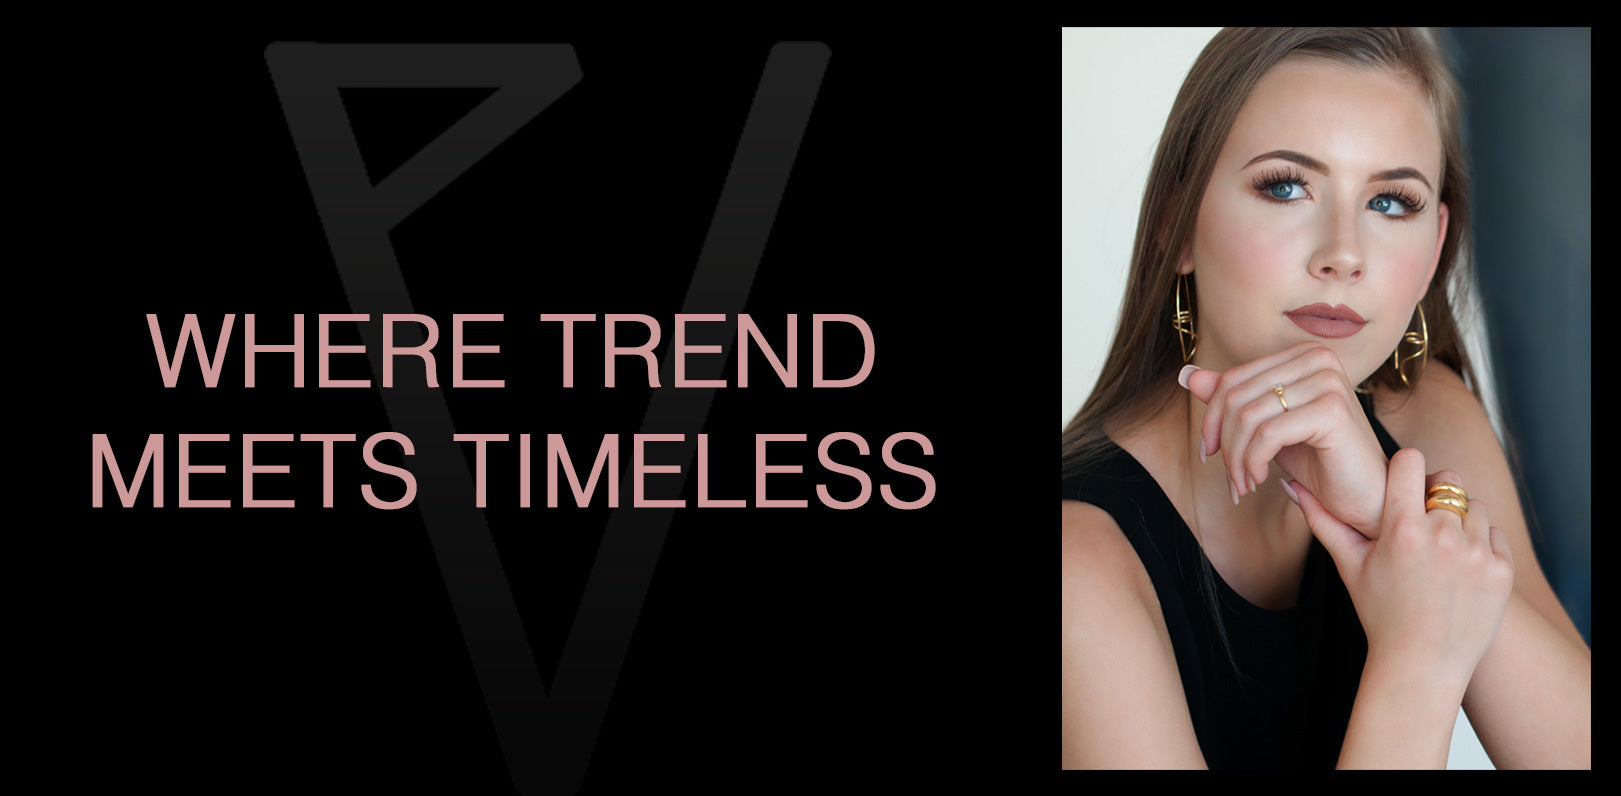 Where trend meets timeless 4